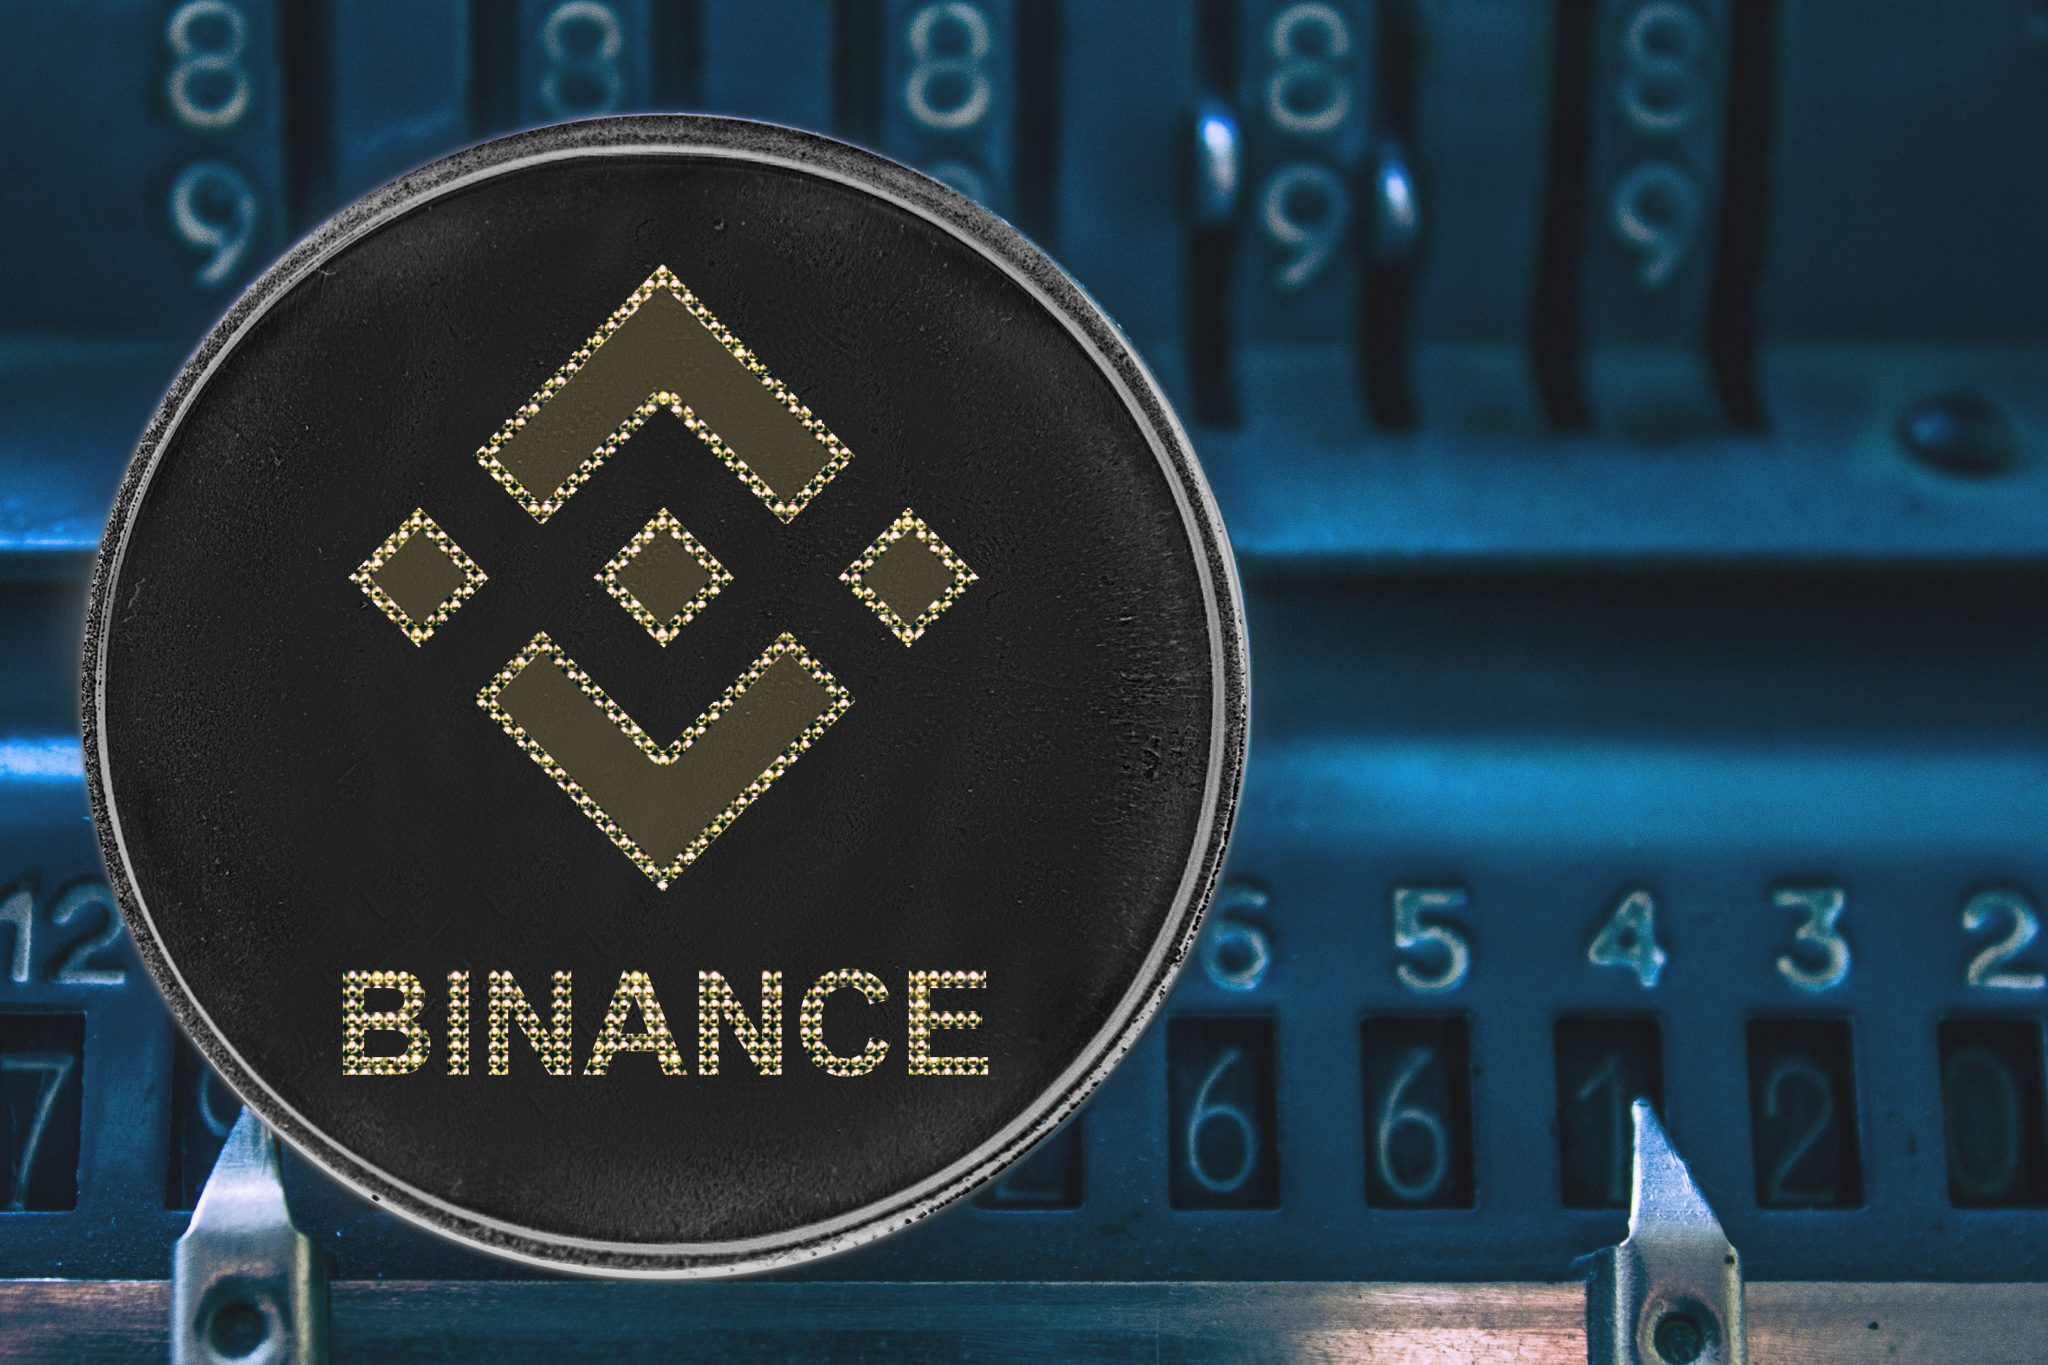 Coin cryptocurrency bnb against the numbers of the arithmometer. binance